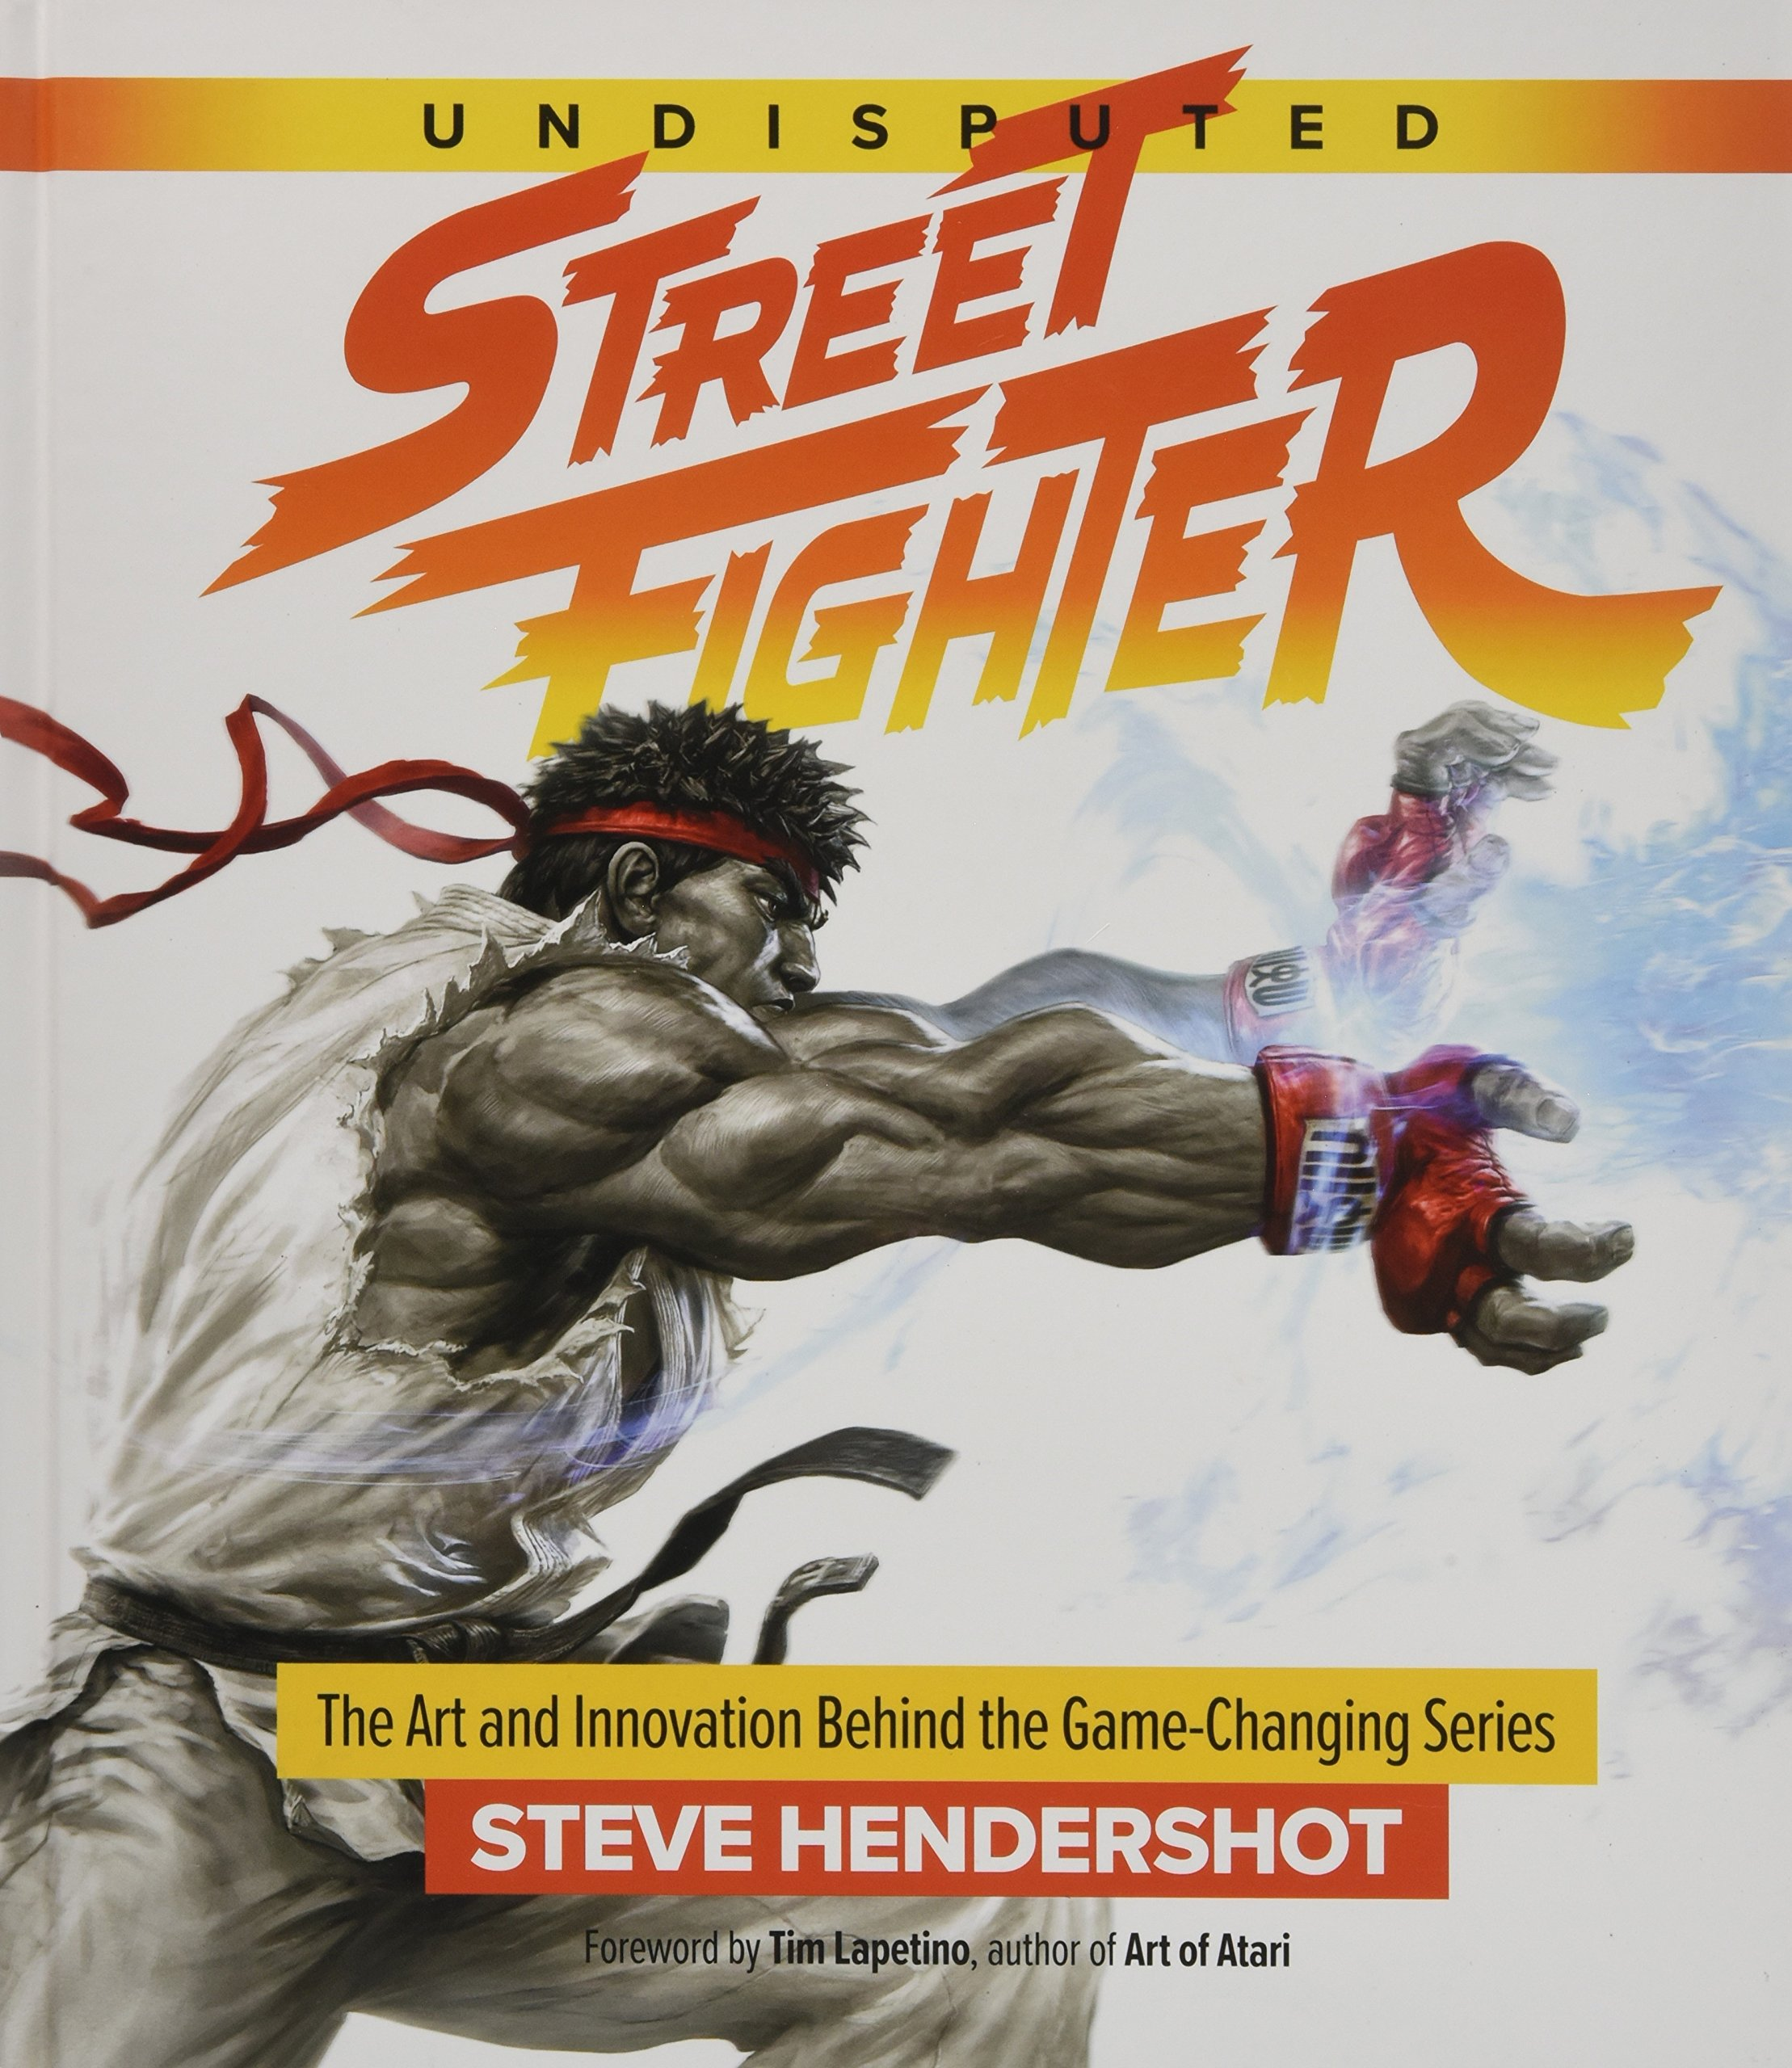 Undisputed Street Fighter: A 30th Anniversary Retrospective ...